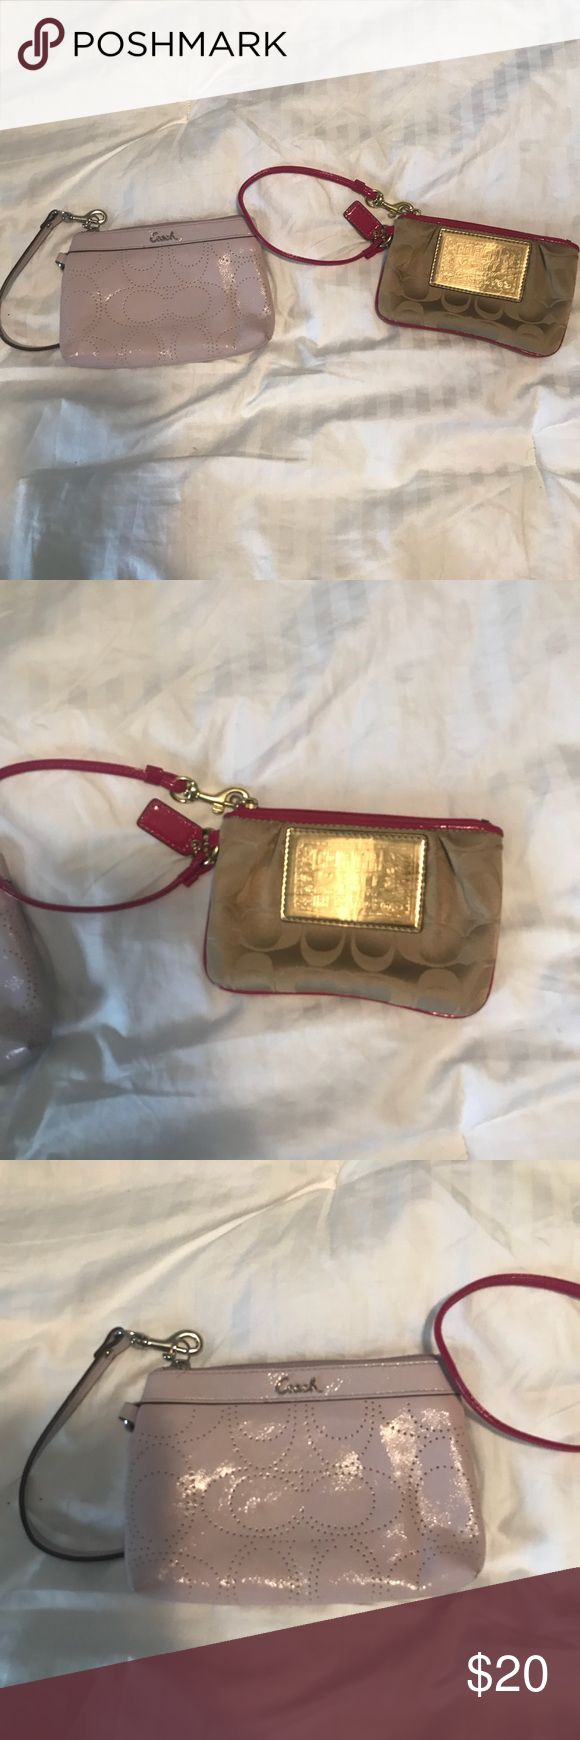 Coach Wristlets One Pink Coach Wristlet One Tan & Red Coach Wristlet Price Includes Both Coach Bags Clutches & Wristlets